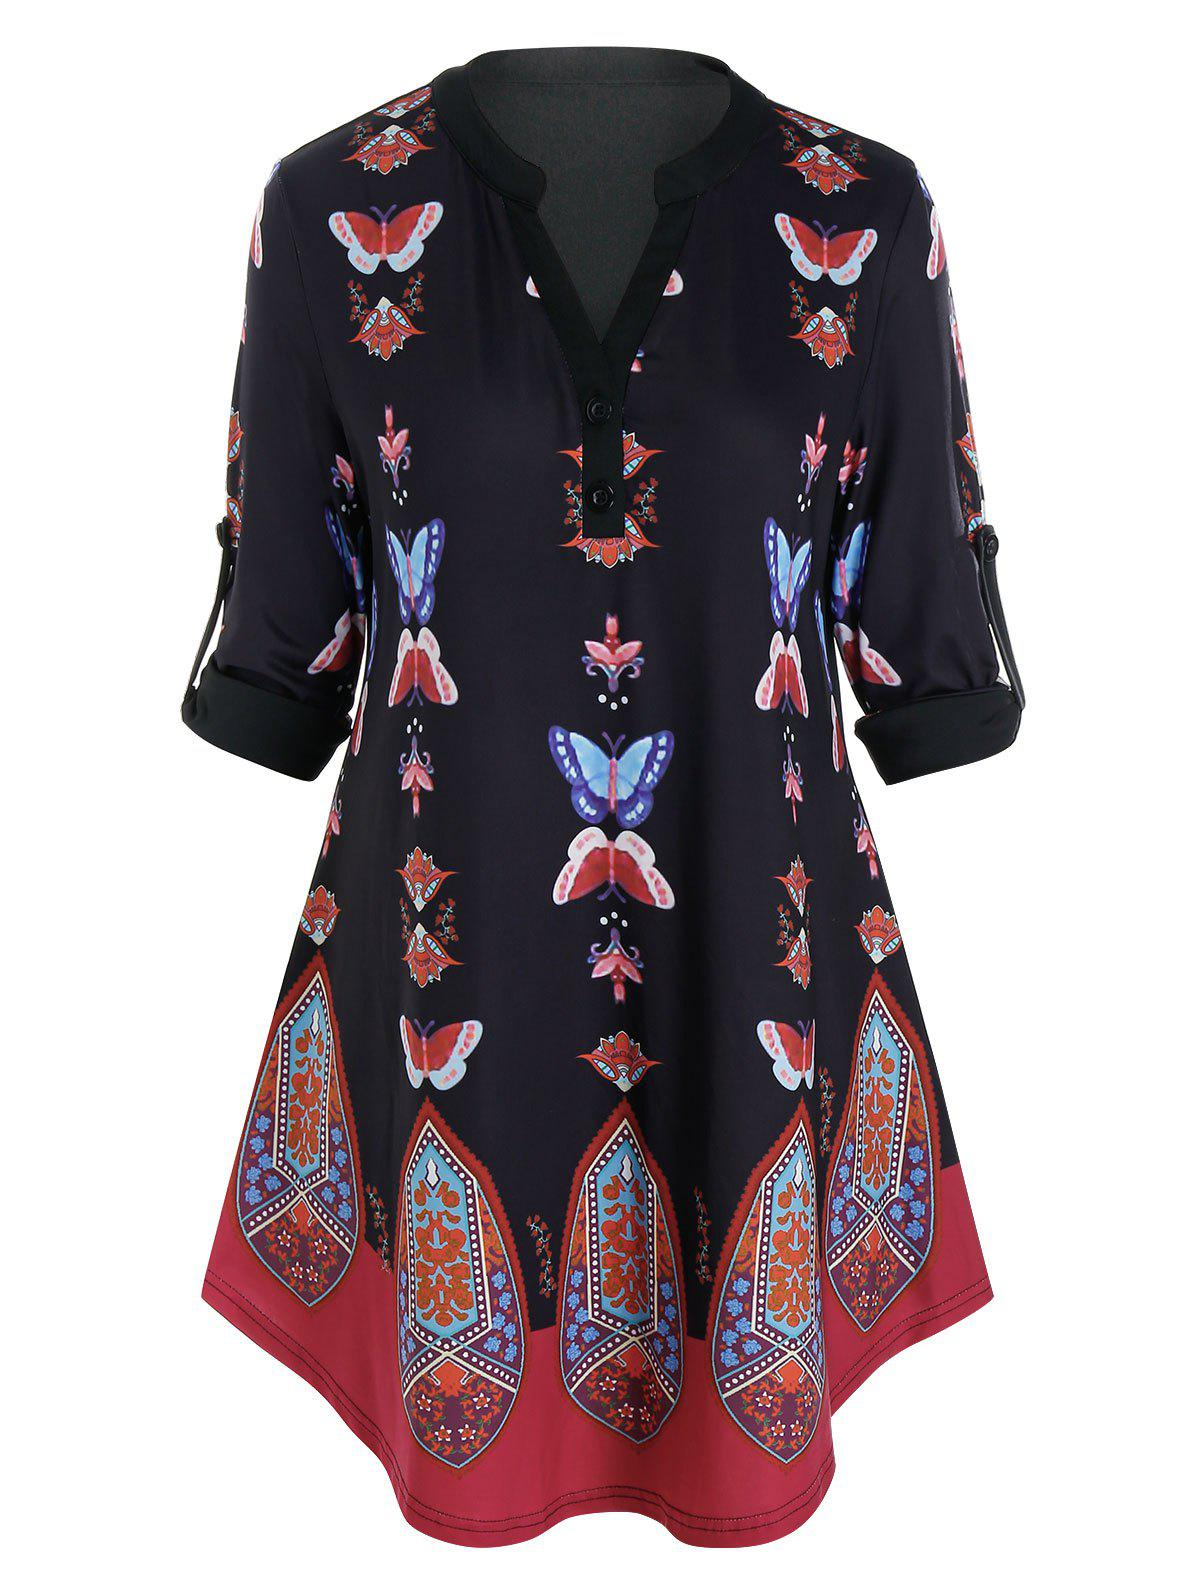 Chic Plus Size Butterfly Tribal Print Roll Up Sleeve Blouse